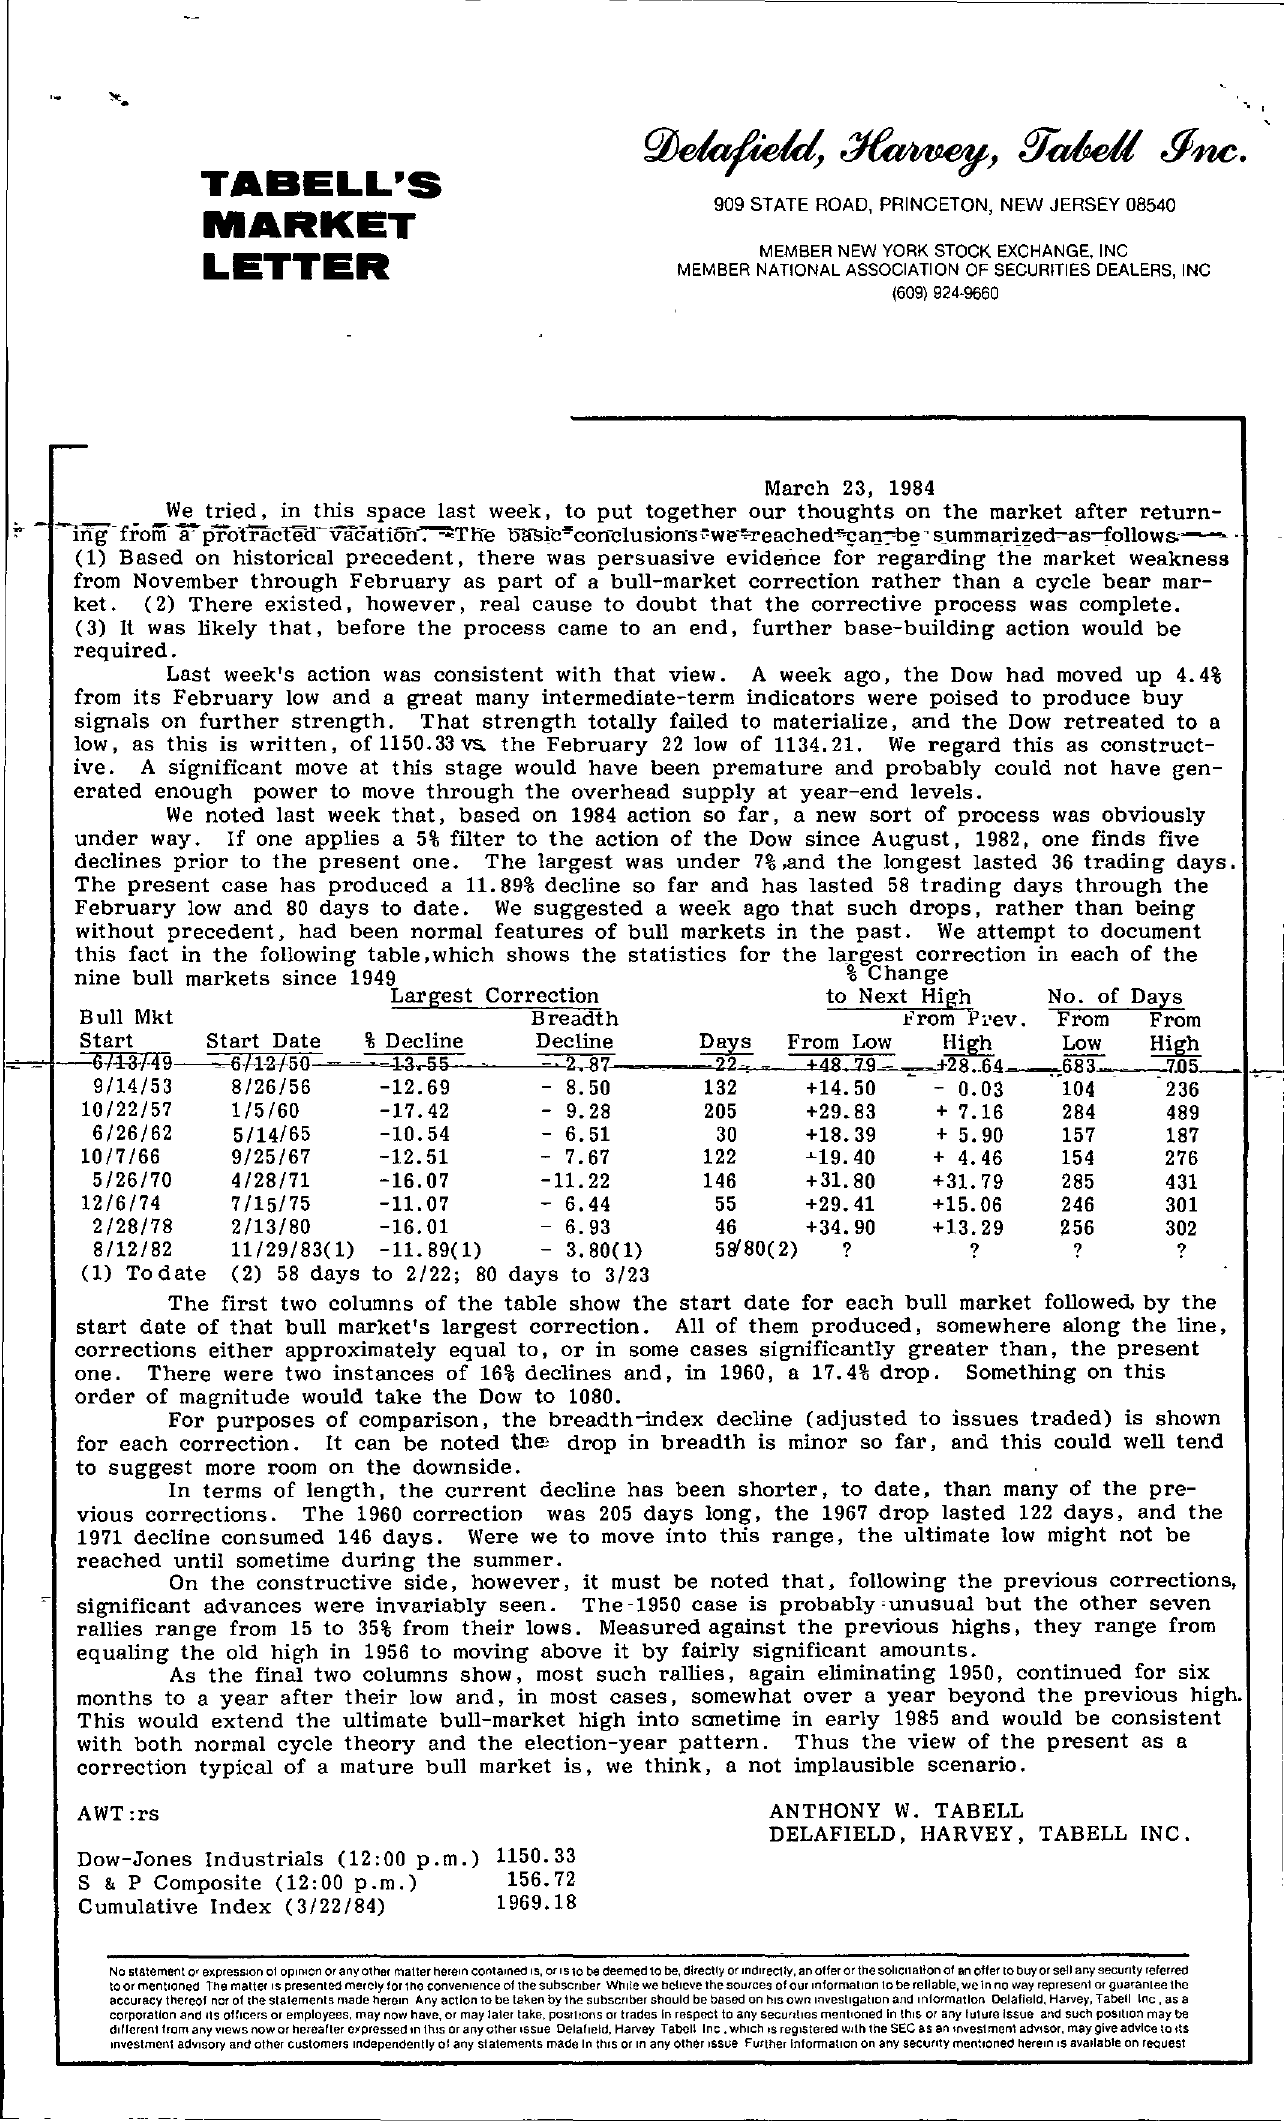 Tabell's Market Letter - March 23, 1984